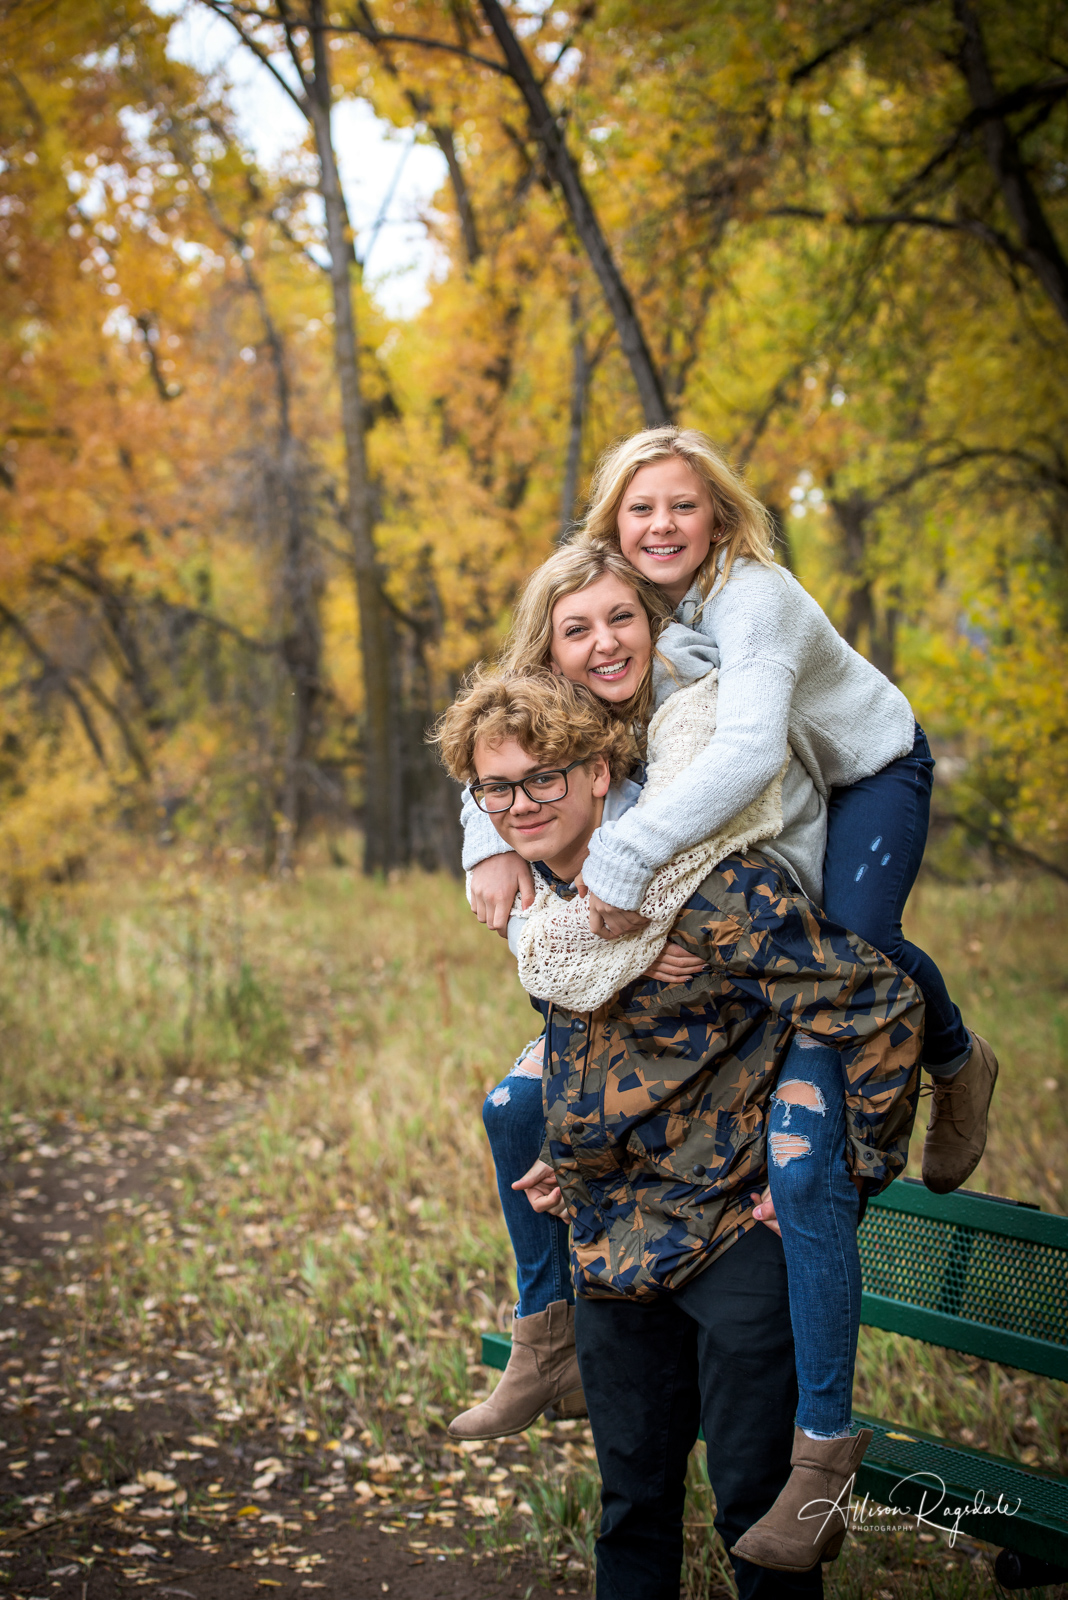 DiGiacomo Family Portraits | Durango Colorado